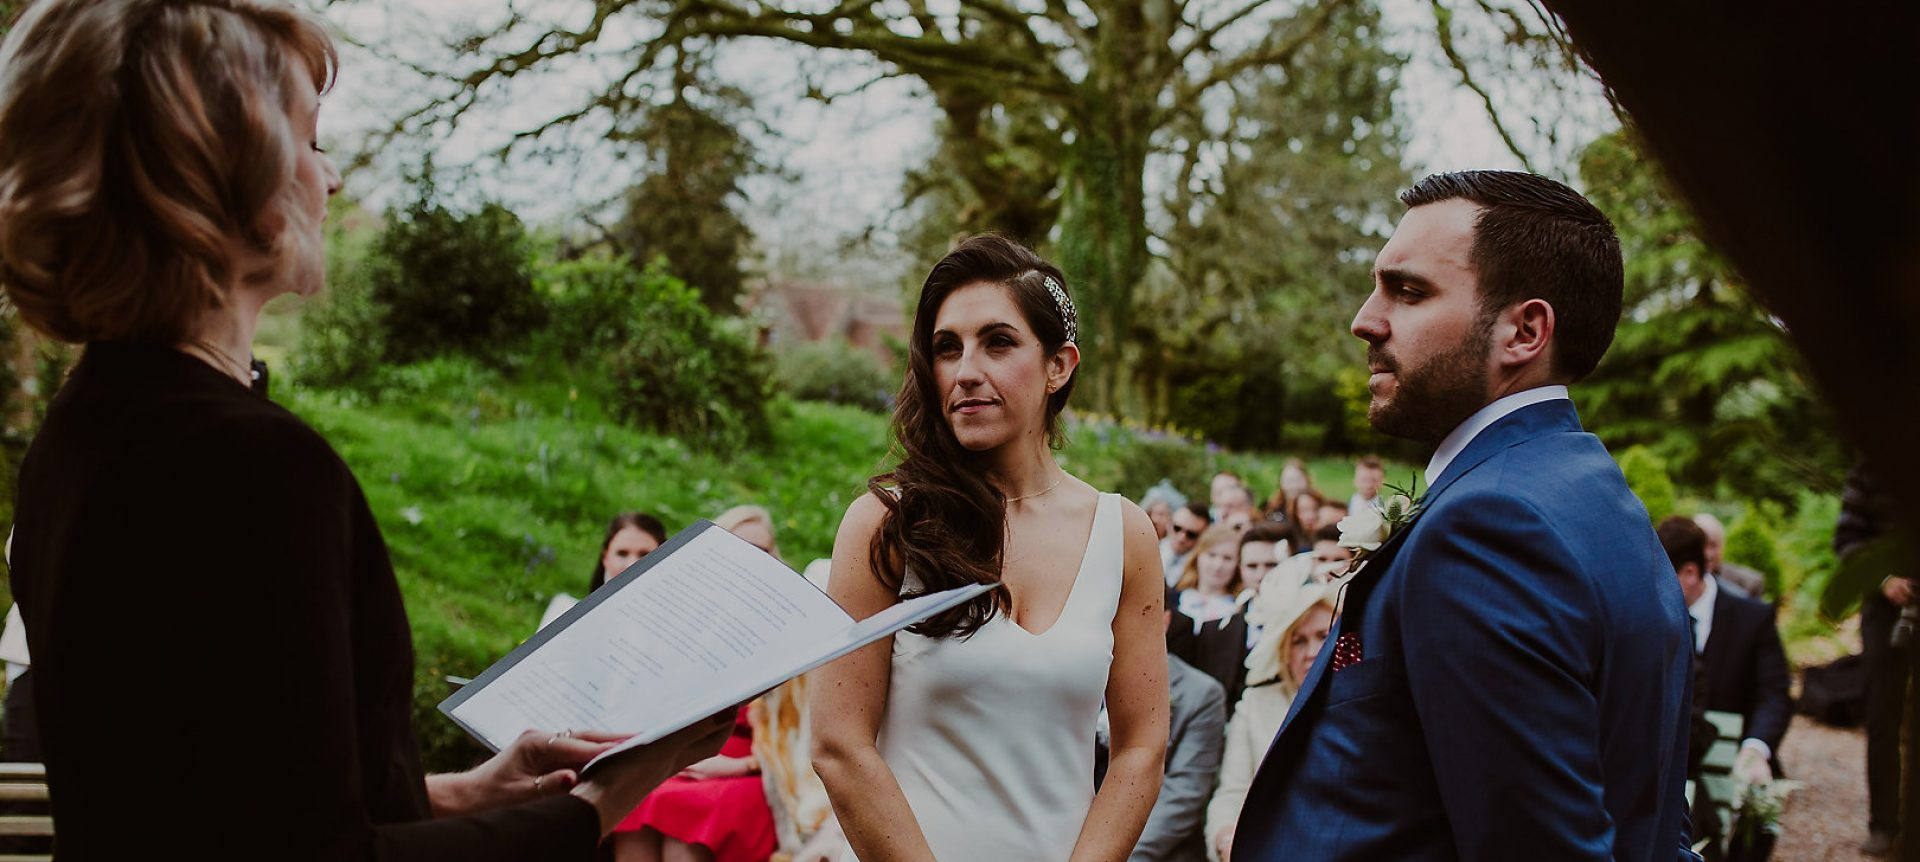 Lara and Ben gatsby wedding blessing huntsham court devon celebrant